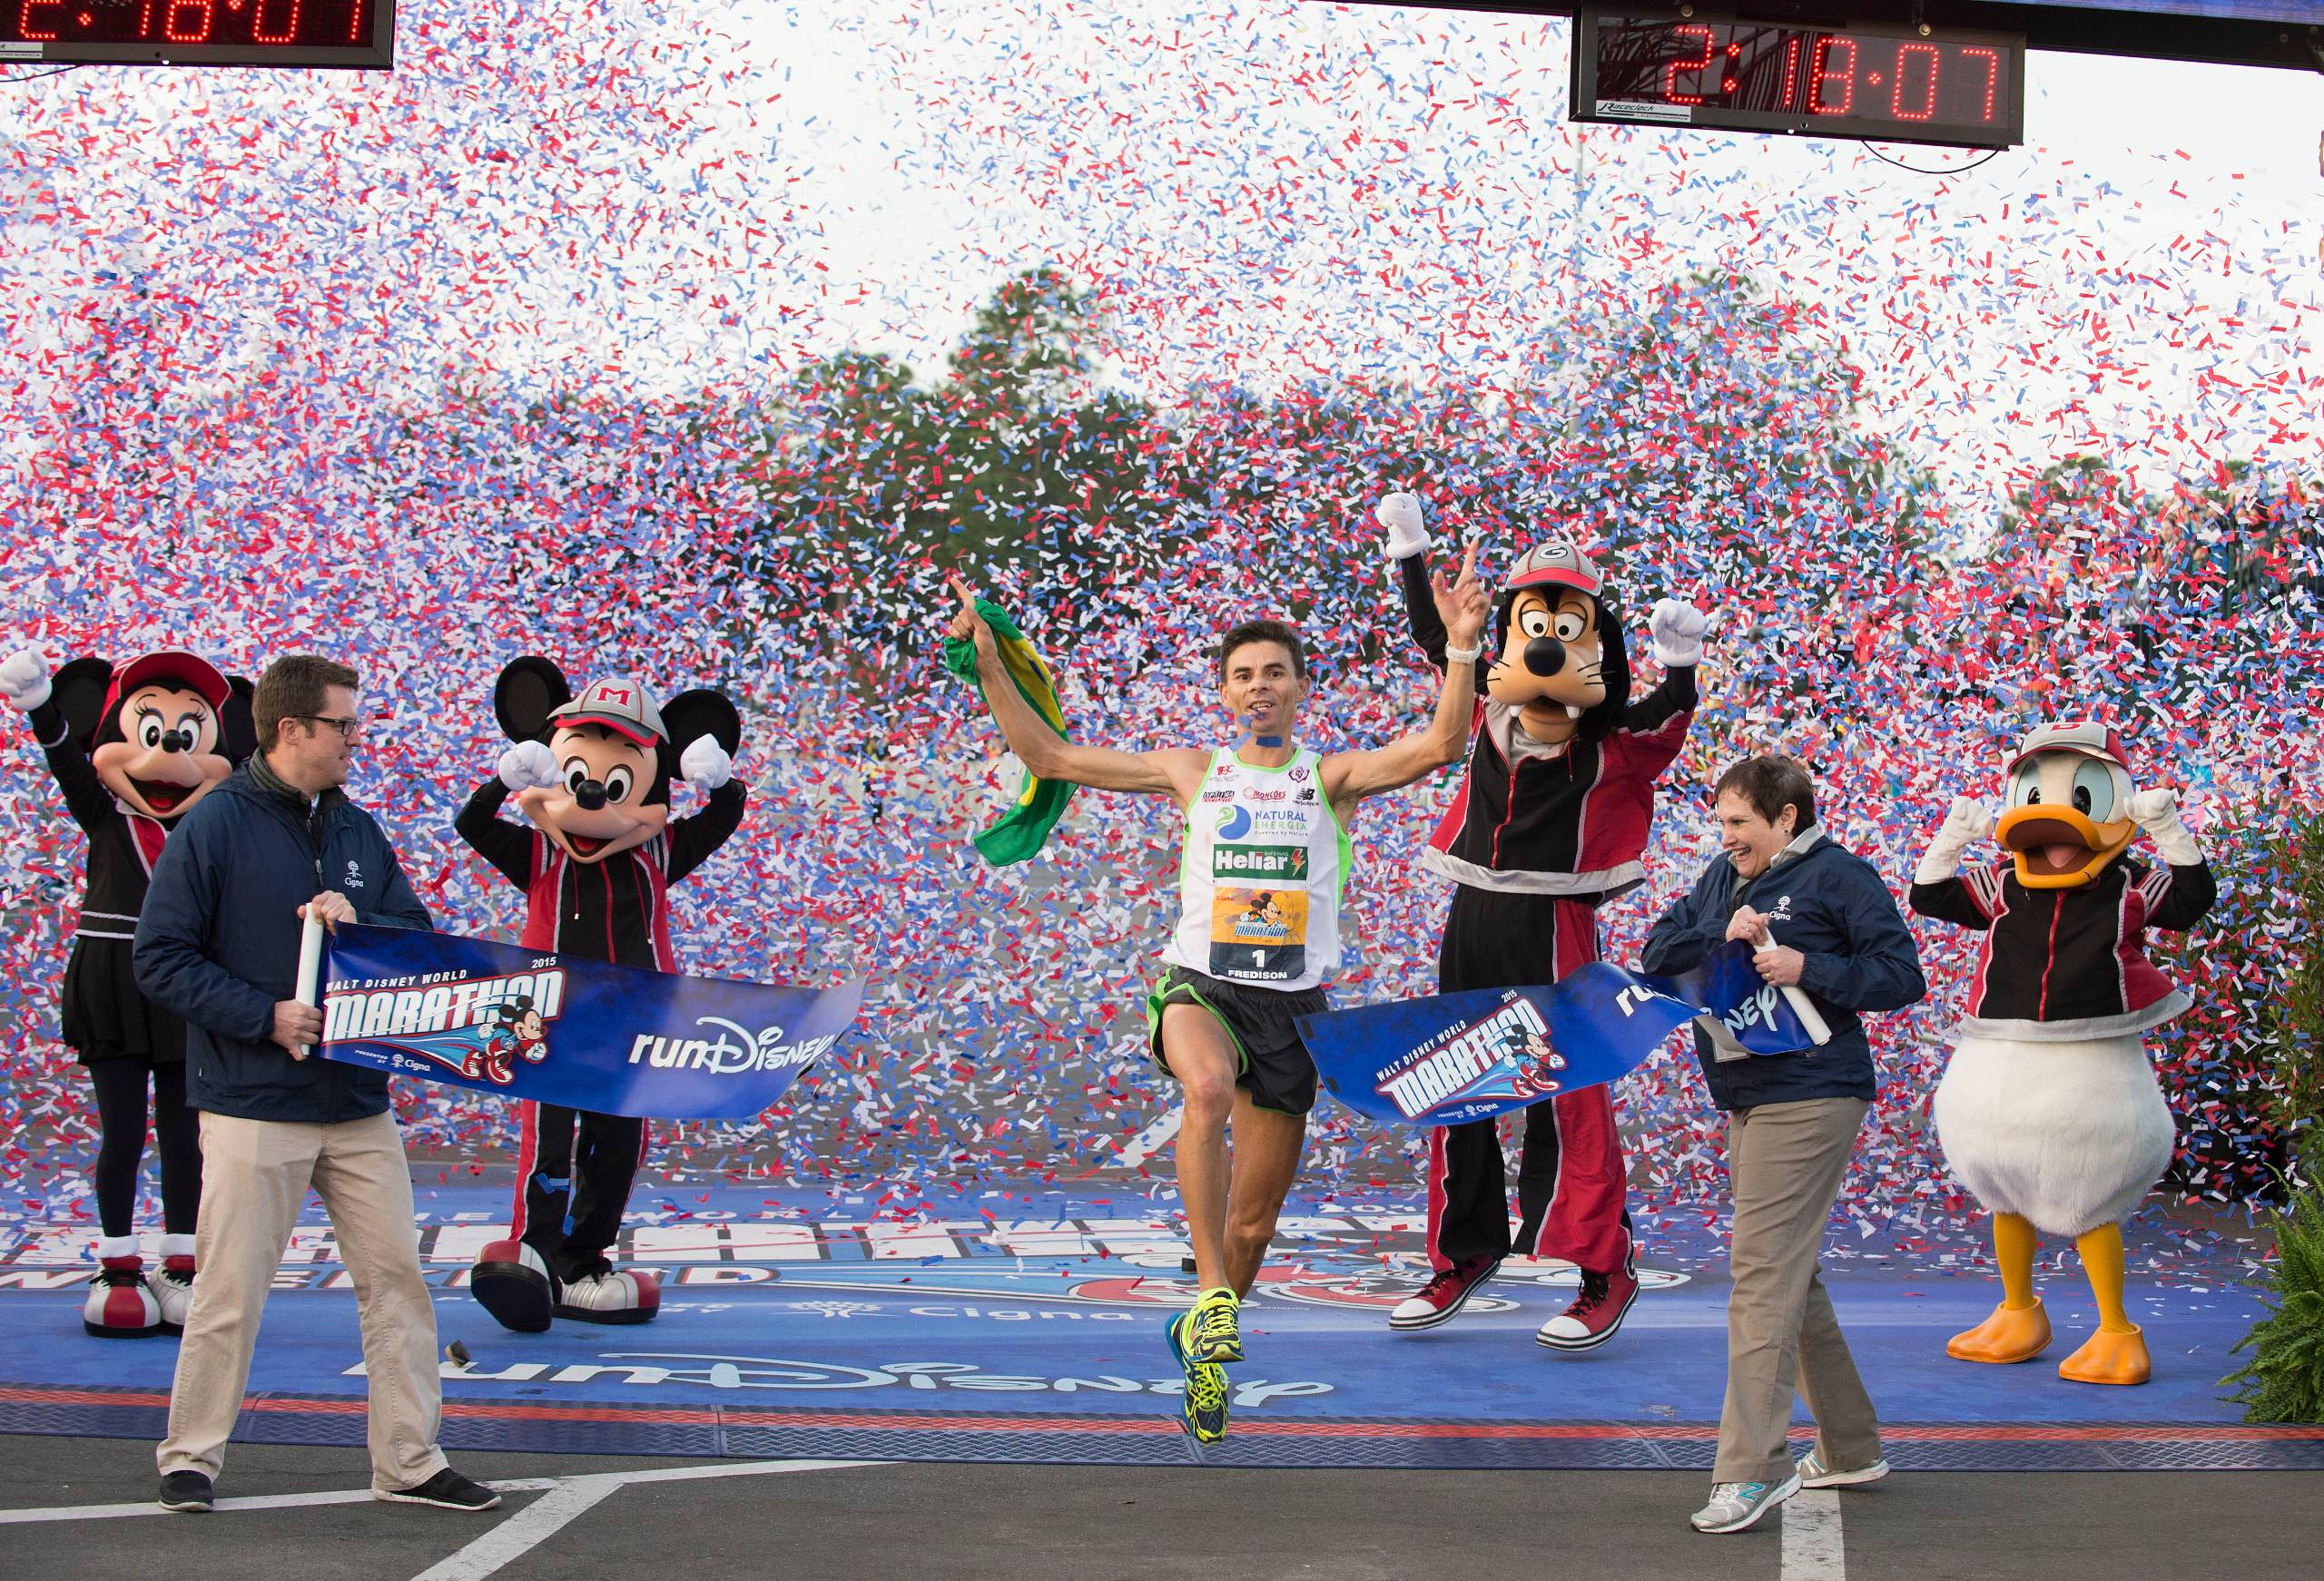 Fredison Costa winner of the 2015 Walt Disney World Marathon